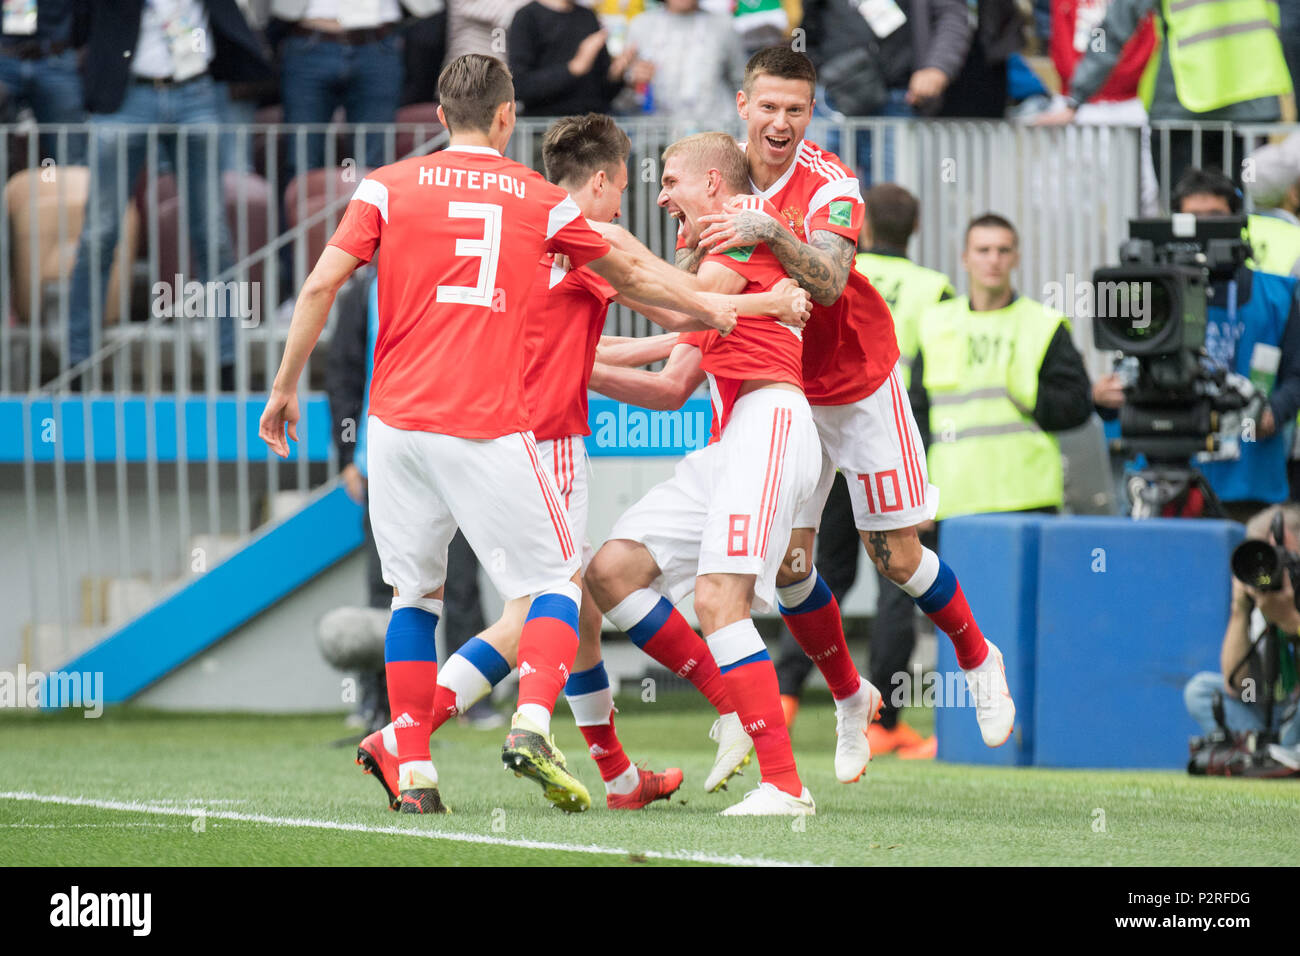 Moscow, Russland. 14th June, 2018. Goalkeeper Iury GAZINSKY (2nd from the right, RUS) celebrates Ilya KUTEPOV (RUS), Aleksandr GOLOVIN (RUS) and Fedor SMOLOV (RUS) over the first goal of the tournament to make it 1-0 for Russia, jubilation, cheering, Cheering, Freganze Figurine, Half Figure, Half Figure, Russia (RUS) - Saudi Arabia (KSA) 5: 0, Preliminary Round, Group A, Game 1, on 14.06.2018 in Moscow; Football World Cup 2018 in Russia from 14.06. - 15.07.2018. | usage worldwide Credit: dpa/Alamy Live News - Stock Image